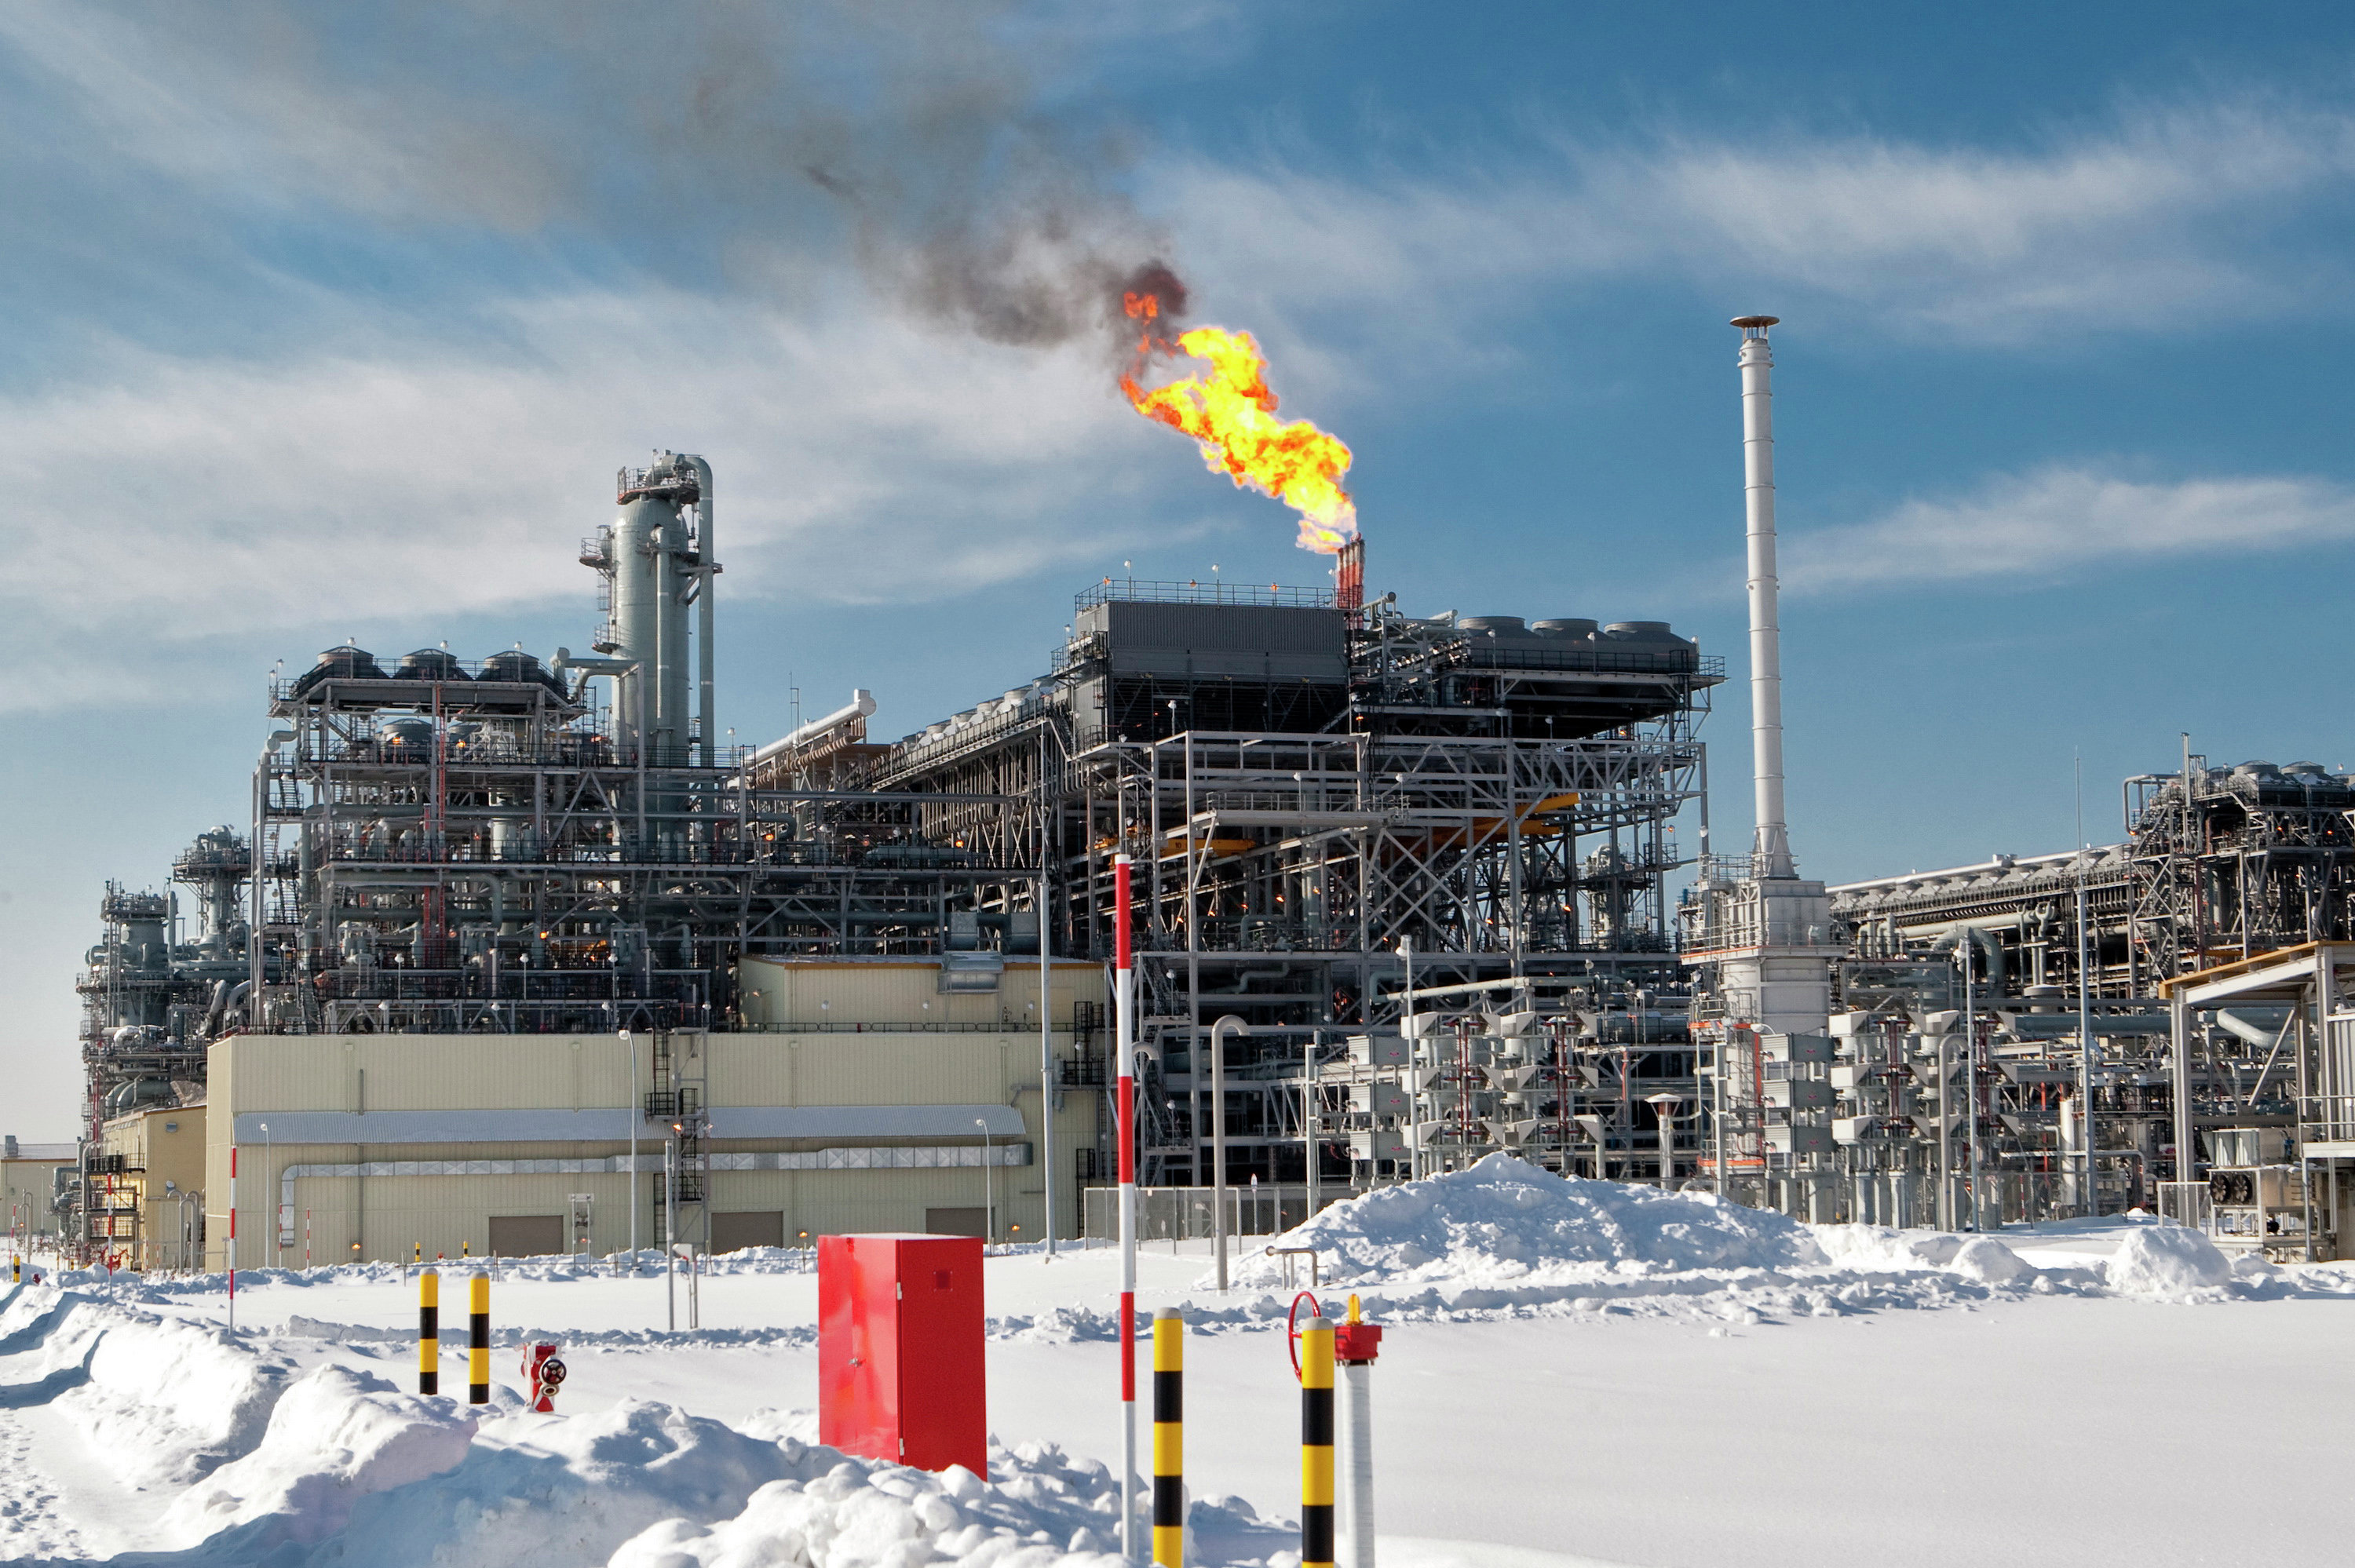 The flare system at Russia's first liquefied natural gas (LNG) plant (the Sakhalin II project), built by Sakhalin Energy Investment Company Ltd. in the village of Prigorodnoye in southern Sakhalin. The island has been turned into a major source of energy in Russia's Far East.